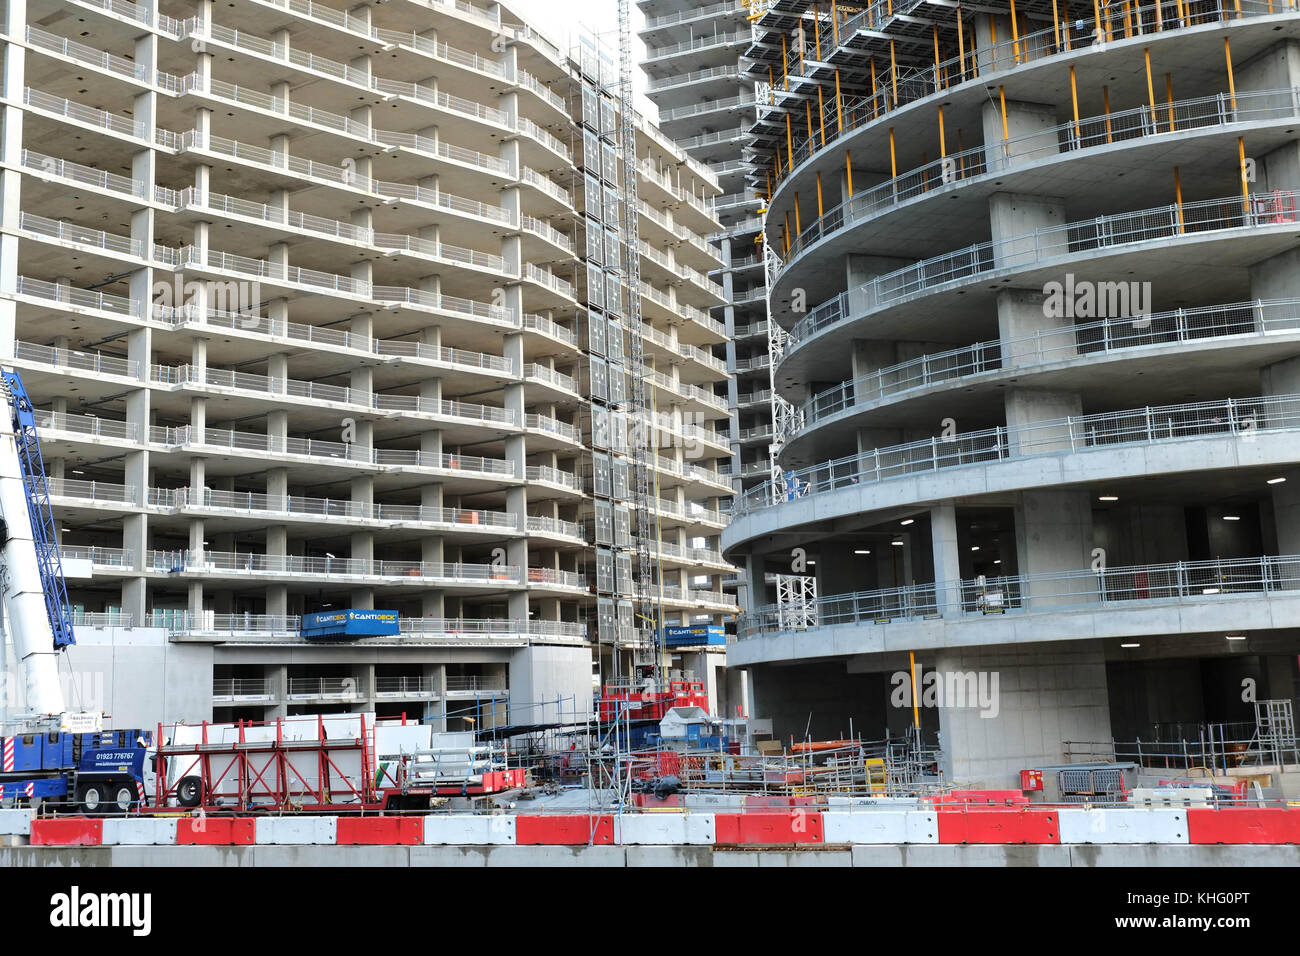 High Rise Blocks Flats In New Stock Photos Amp High Rise Blocks Flats In New Stock Images Alamy